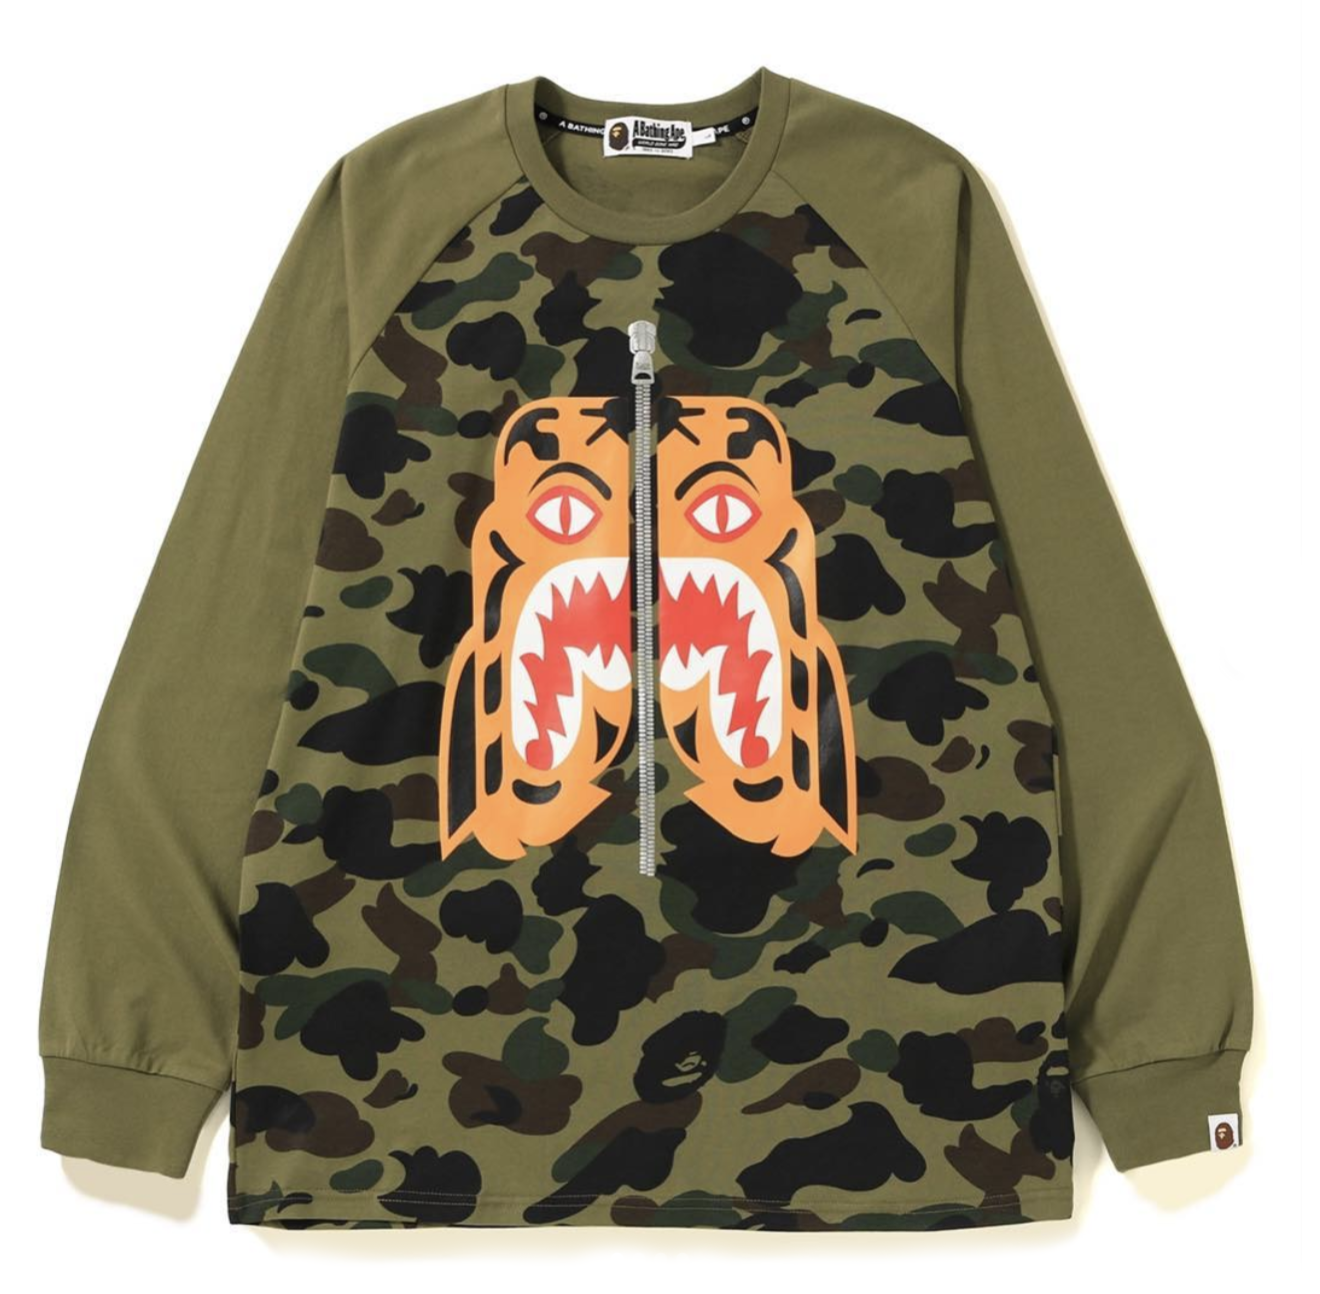 1e4bf487 Bape 1st Camo Tiger LS Tee Green | Novelship: Buy and Sell Sneakers,  Streetwear, 100% Authentic